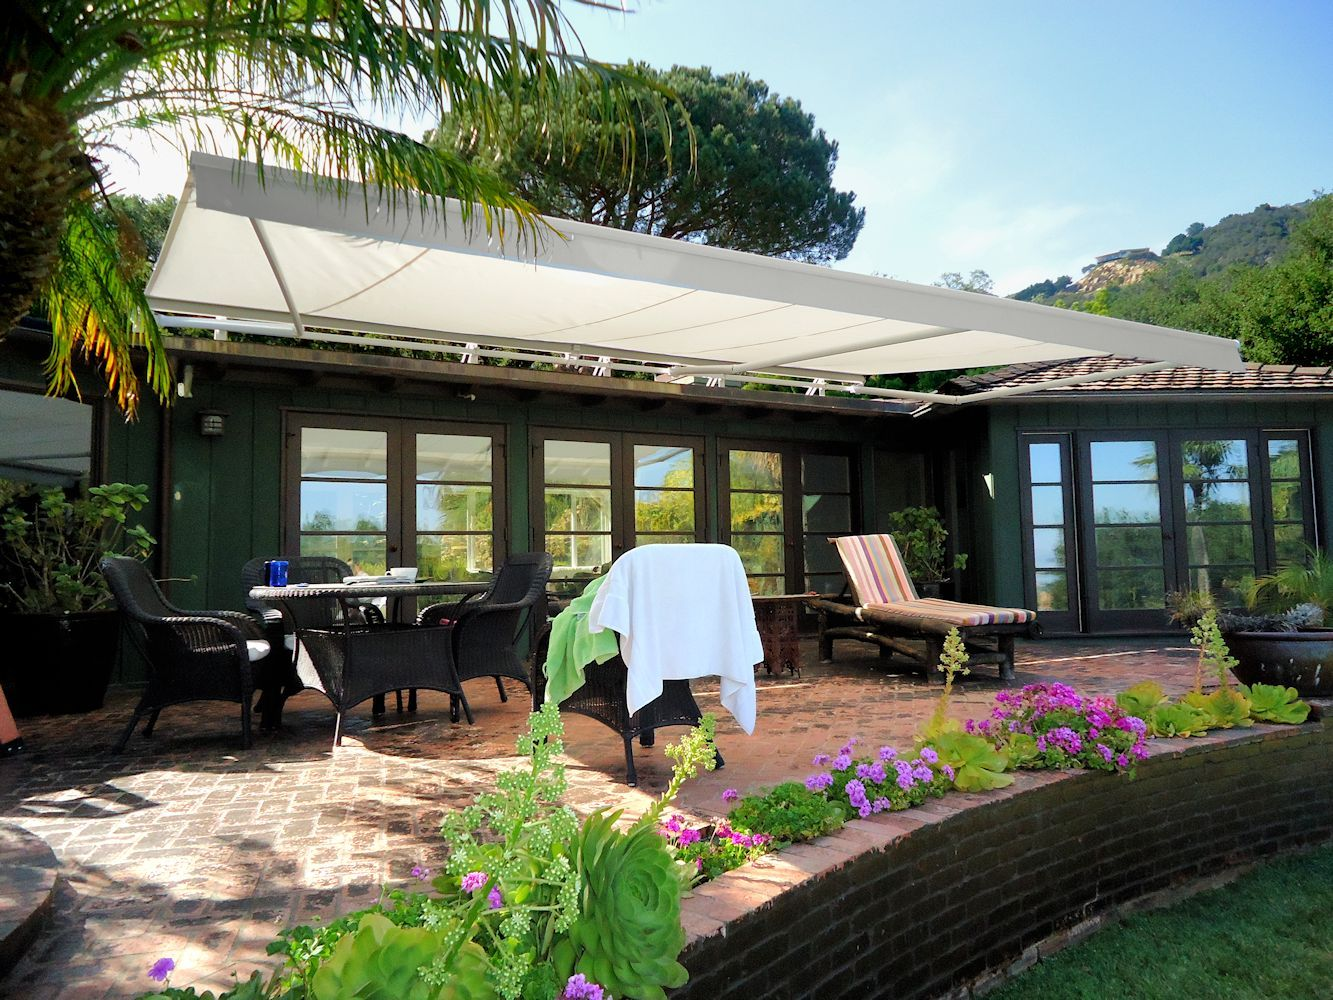 Retractable Awnings By Superior Awning Let The Sun Shine Retractable Awning Awning Pool Houses